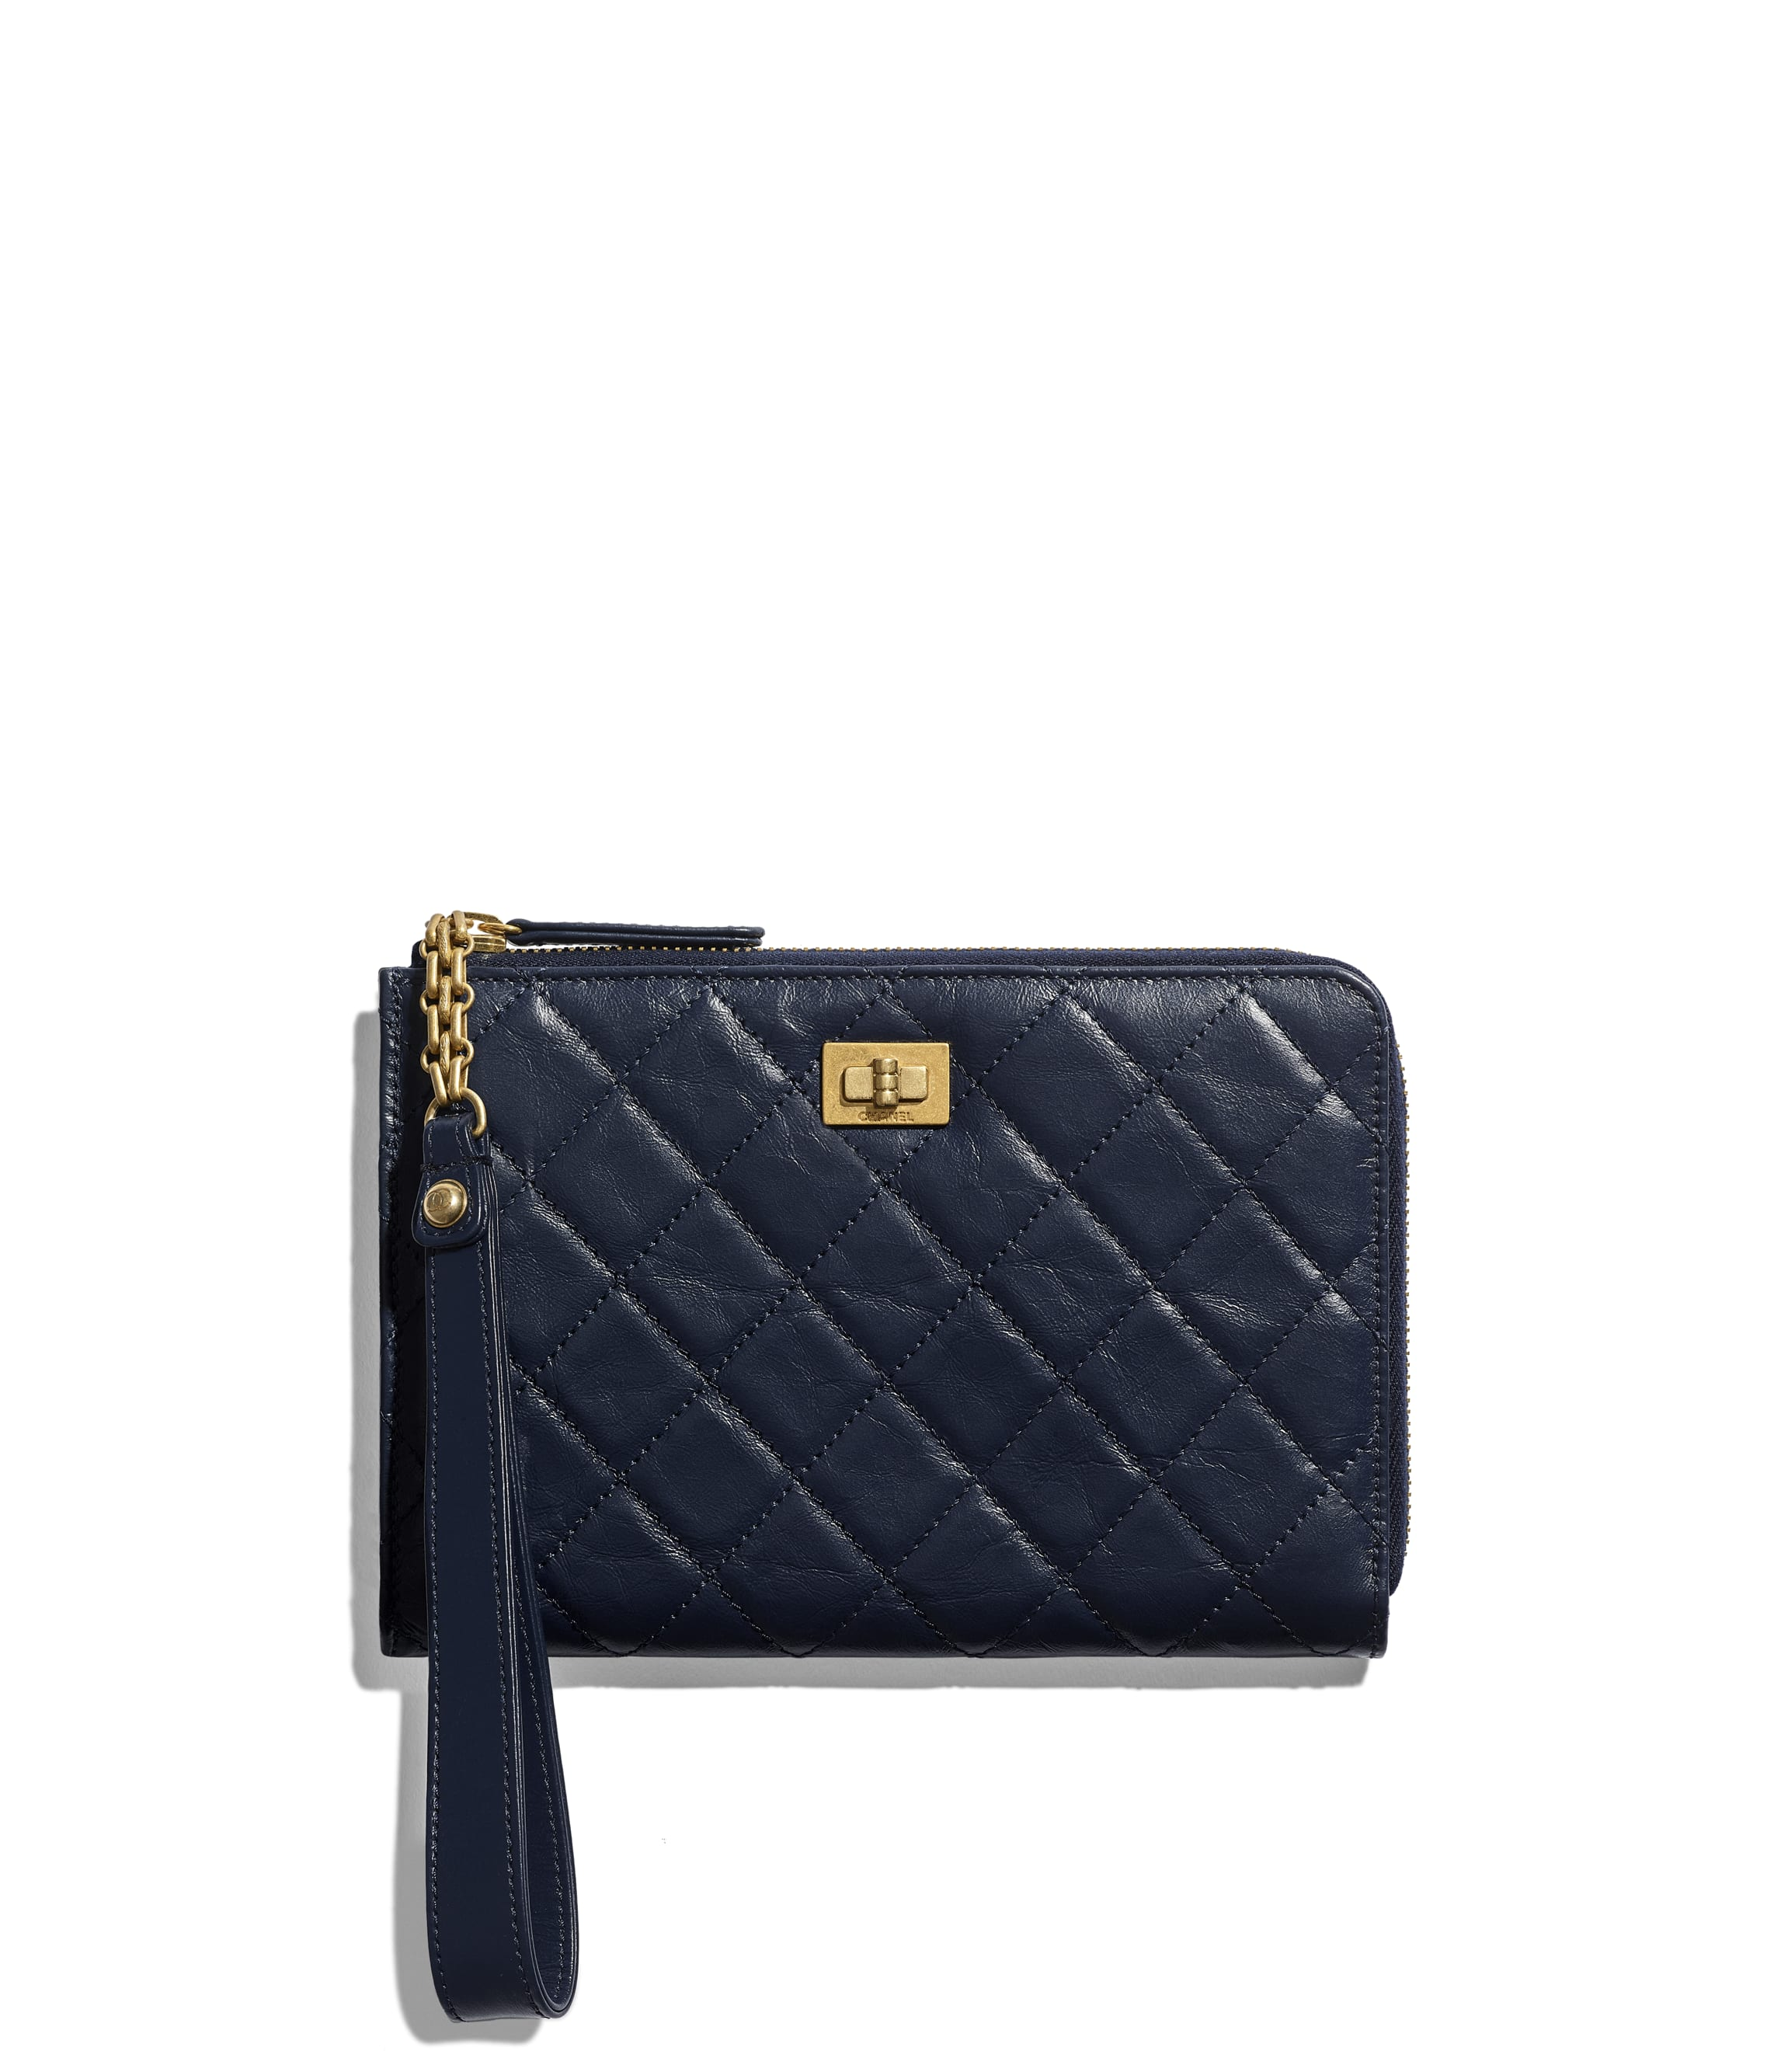 Small leather goods - CHANEL e2555615596